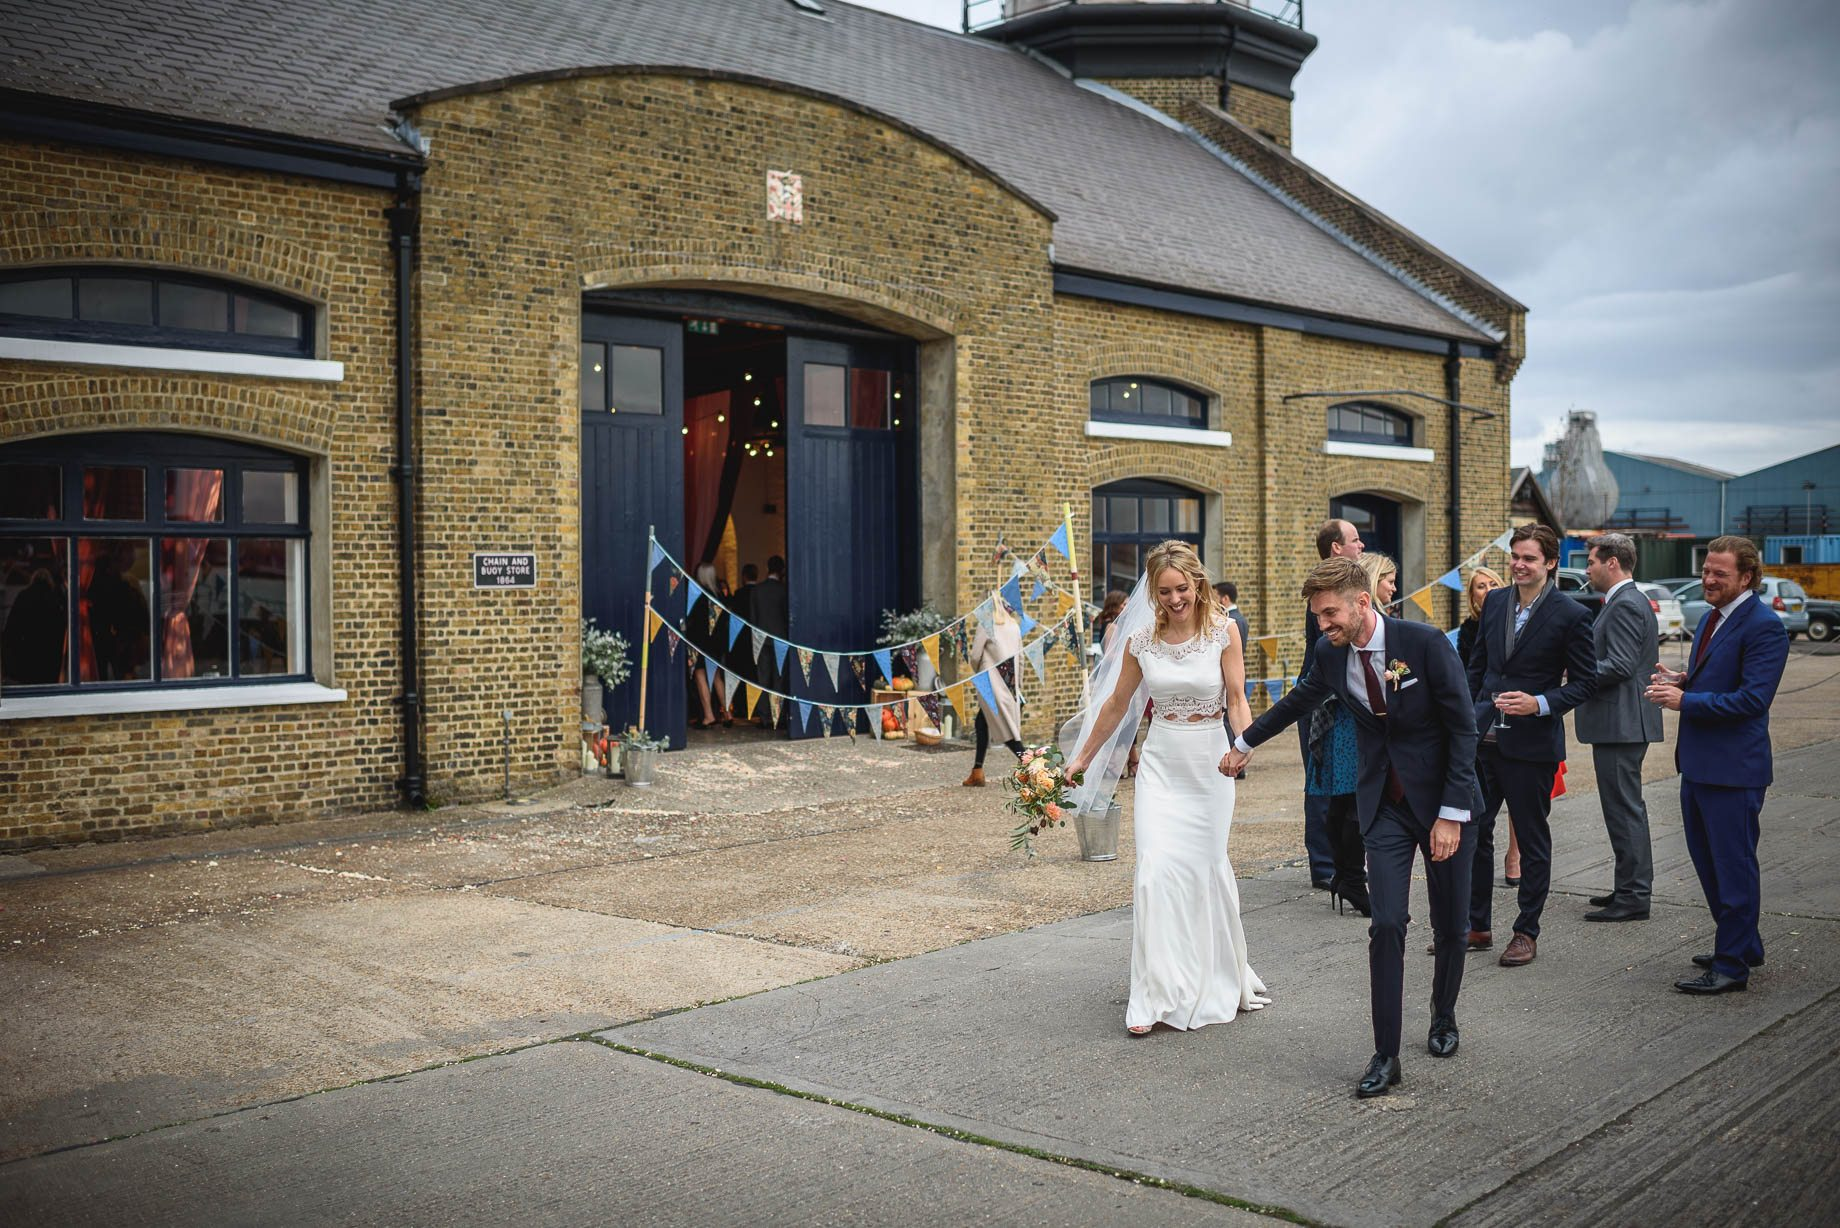 trinity-buoy-wharf-wedding-photography-guy-collier-photography-katie-and-james-109-of-213